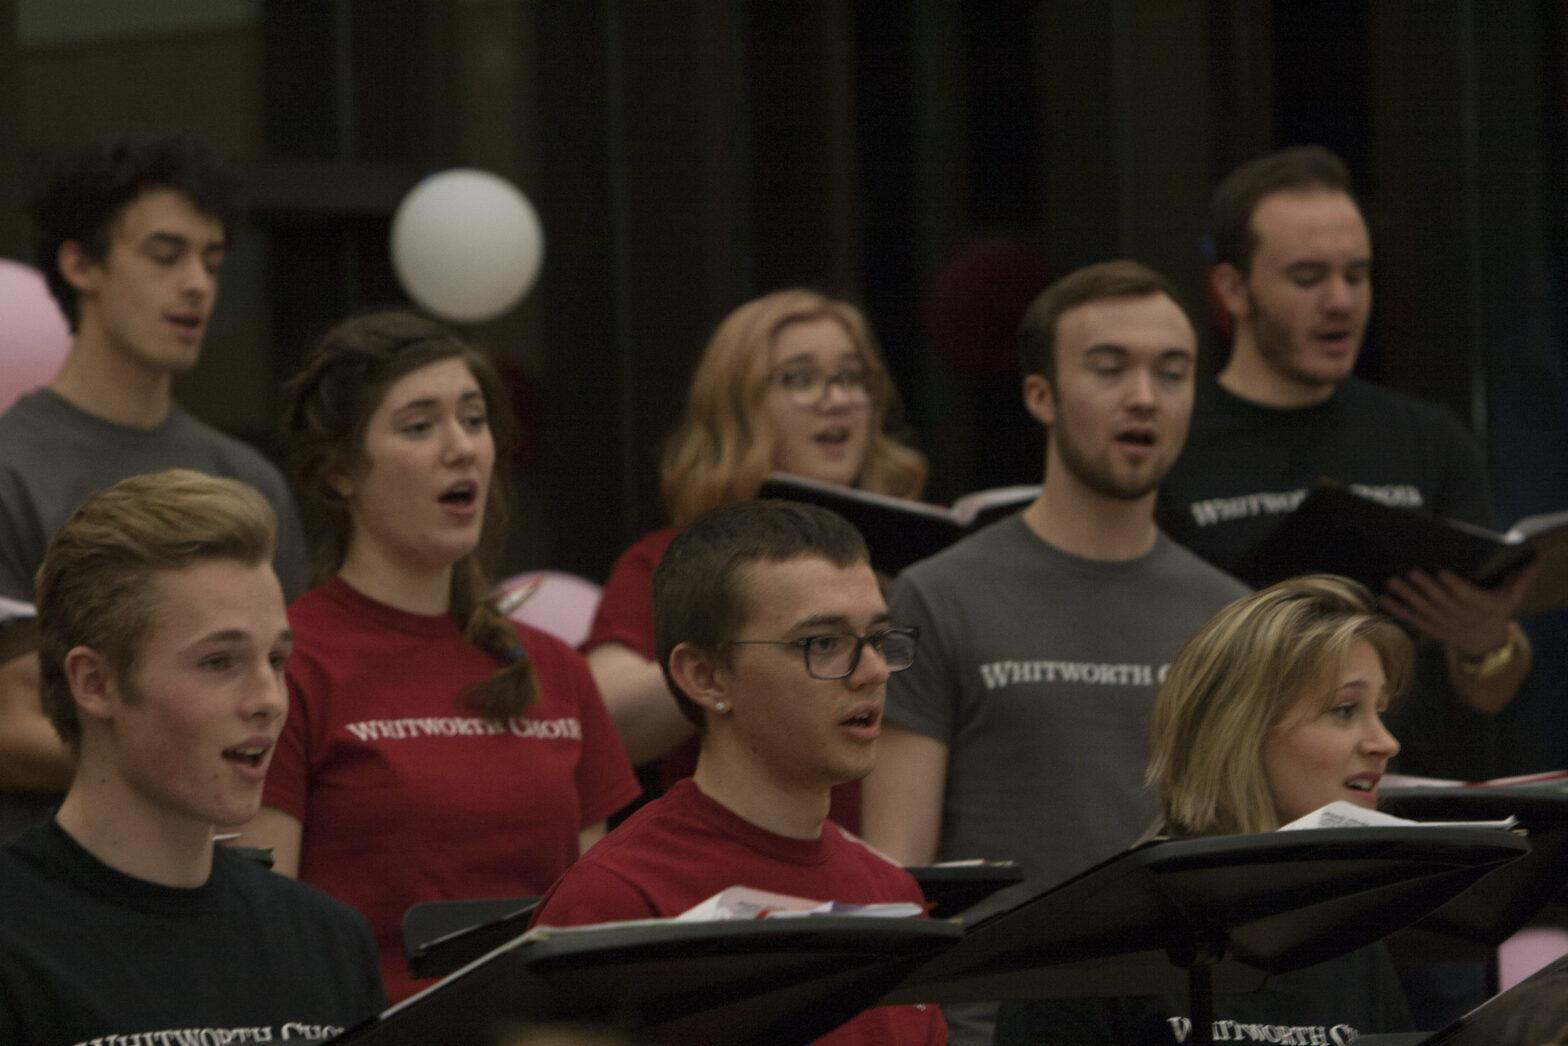 The return of a Whitworth Choirs tradition